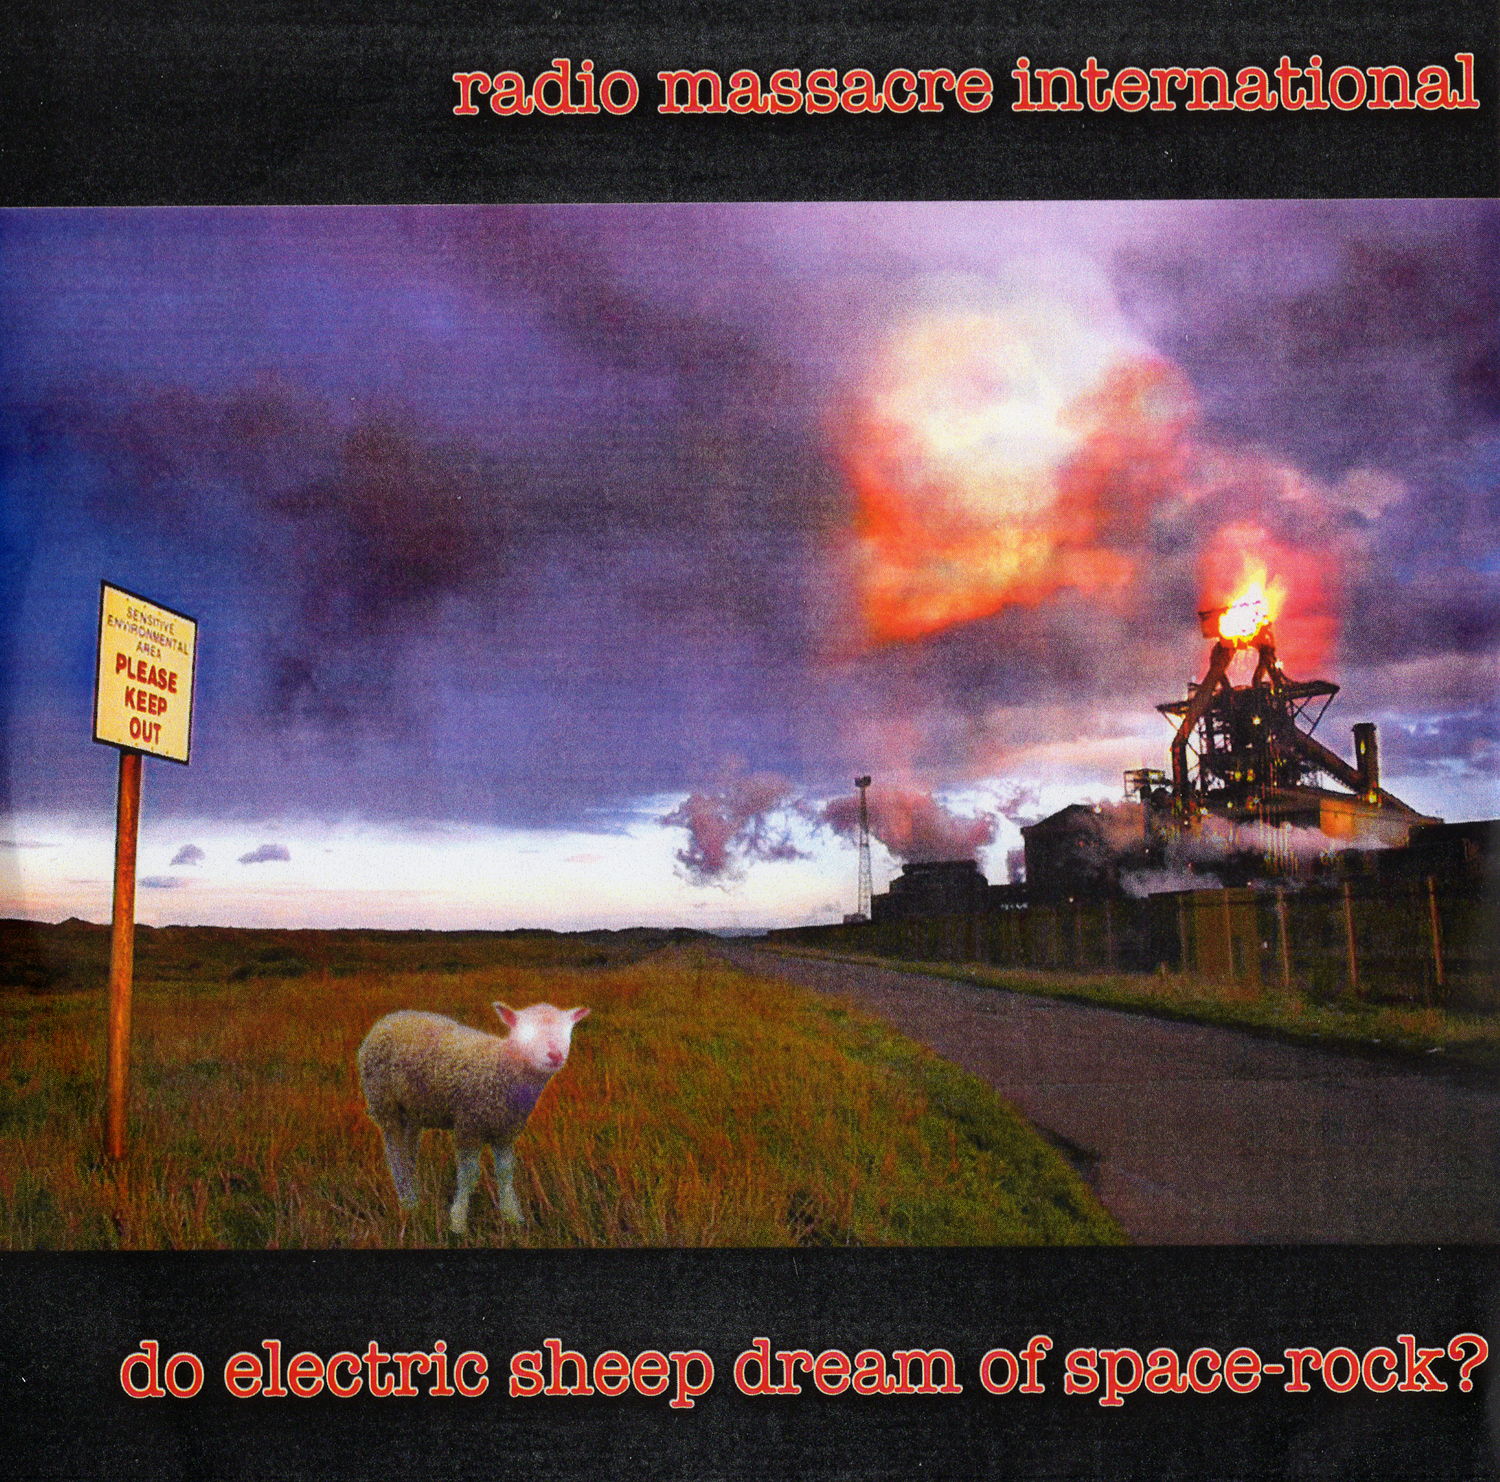 do electric sheep dream of space rock?